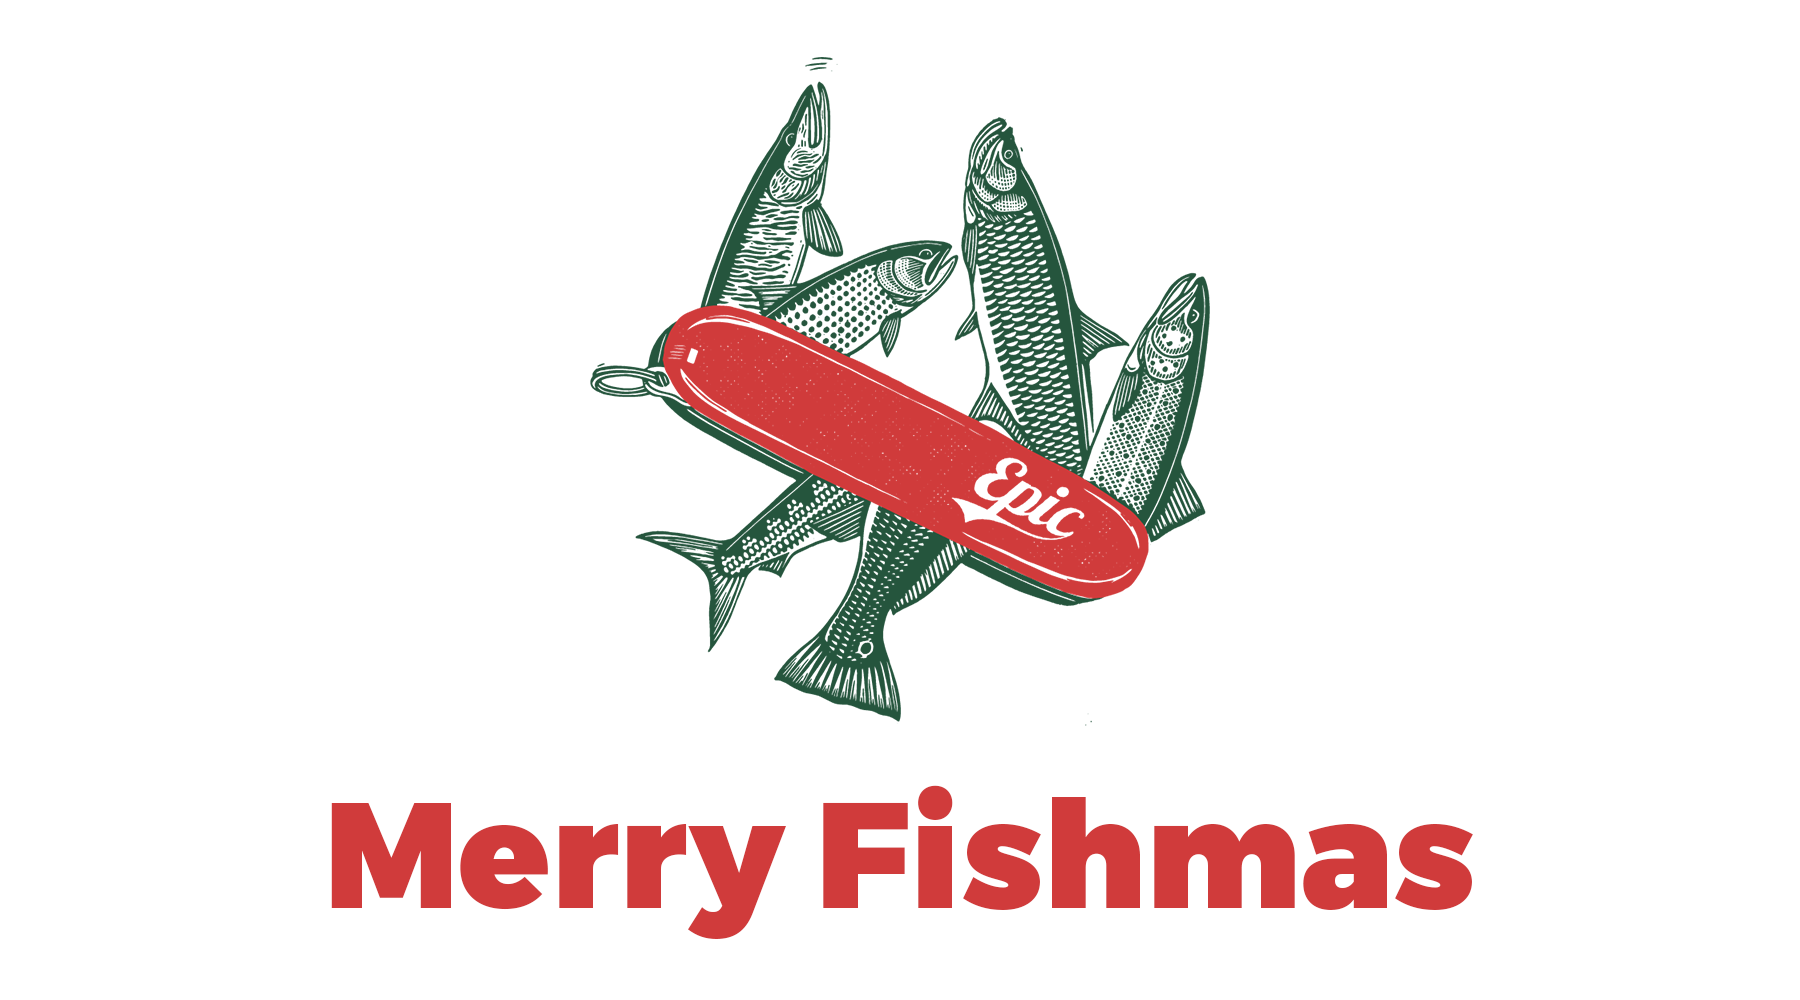 Fly Fishing Chrstmas Gifts for fly fisherman